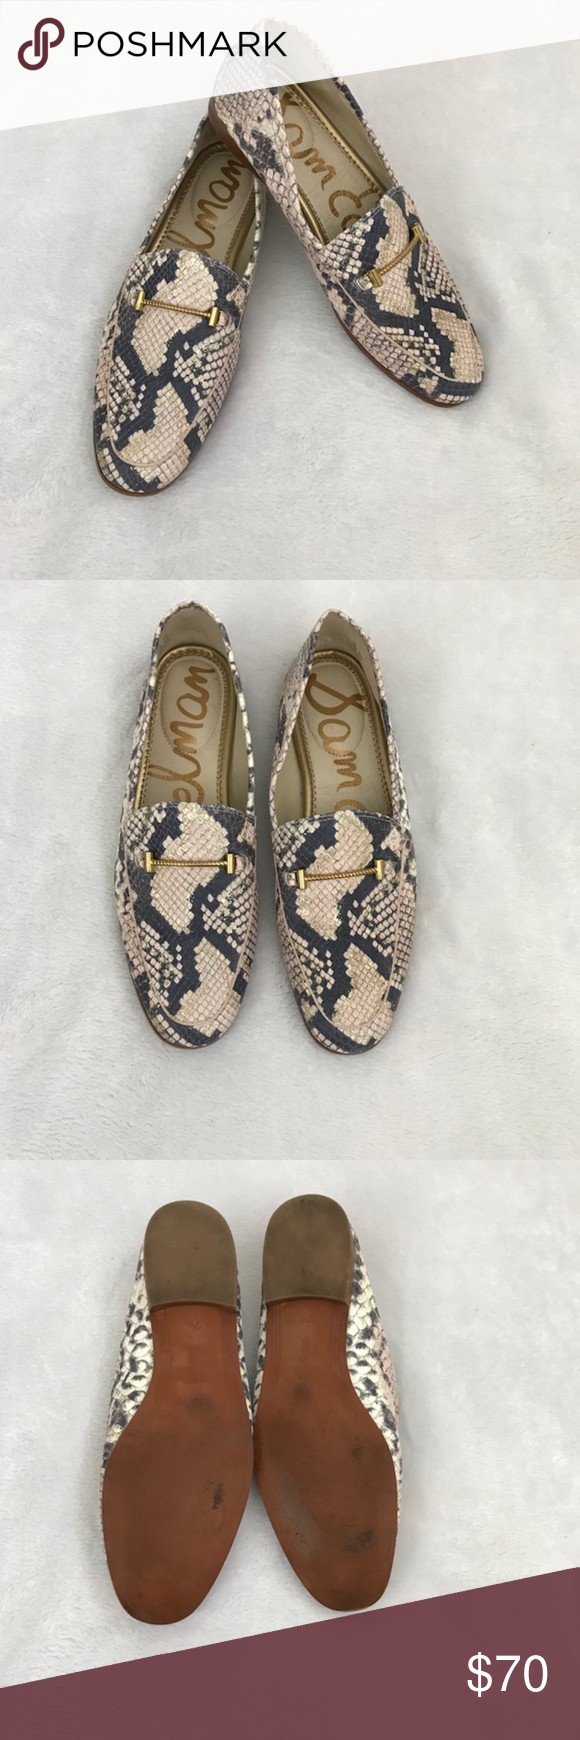 fc65af2479d4 Sam Edelman Loraine Snake Print Leather Loafers These are in excellent  condition with minimal signs of